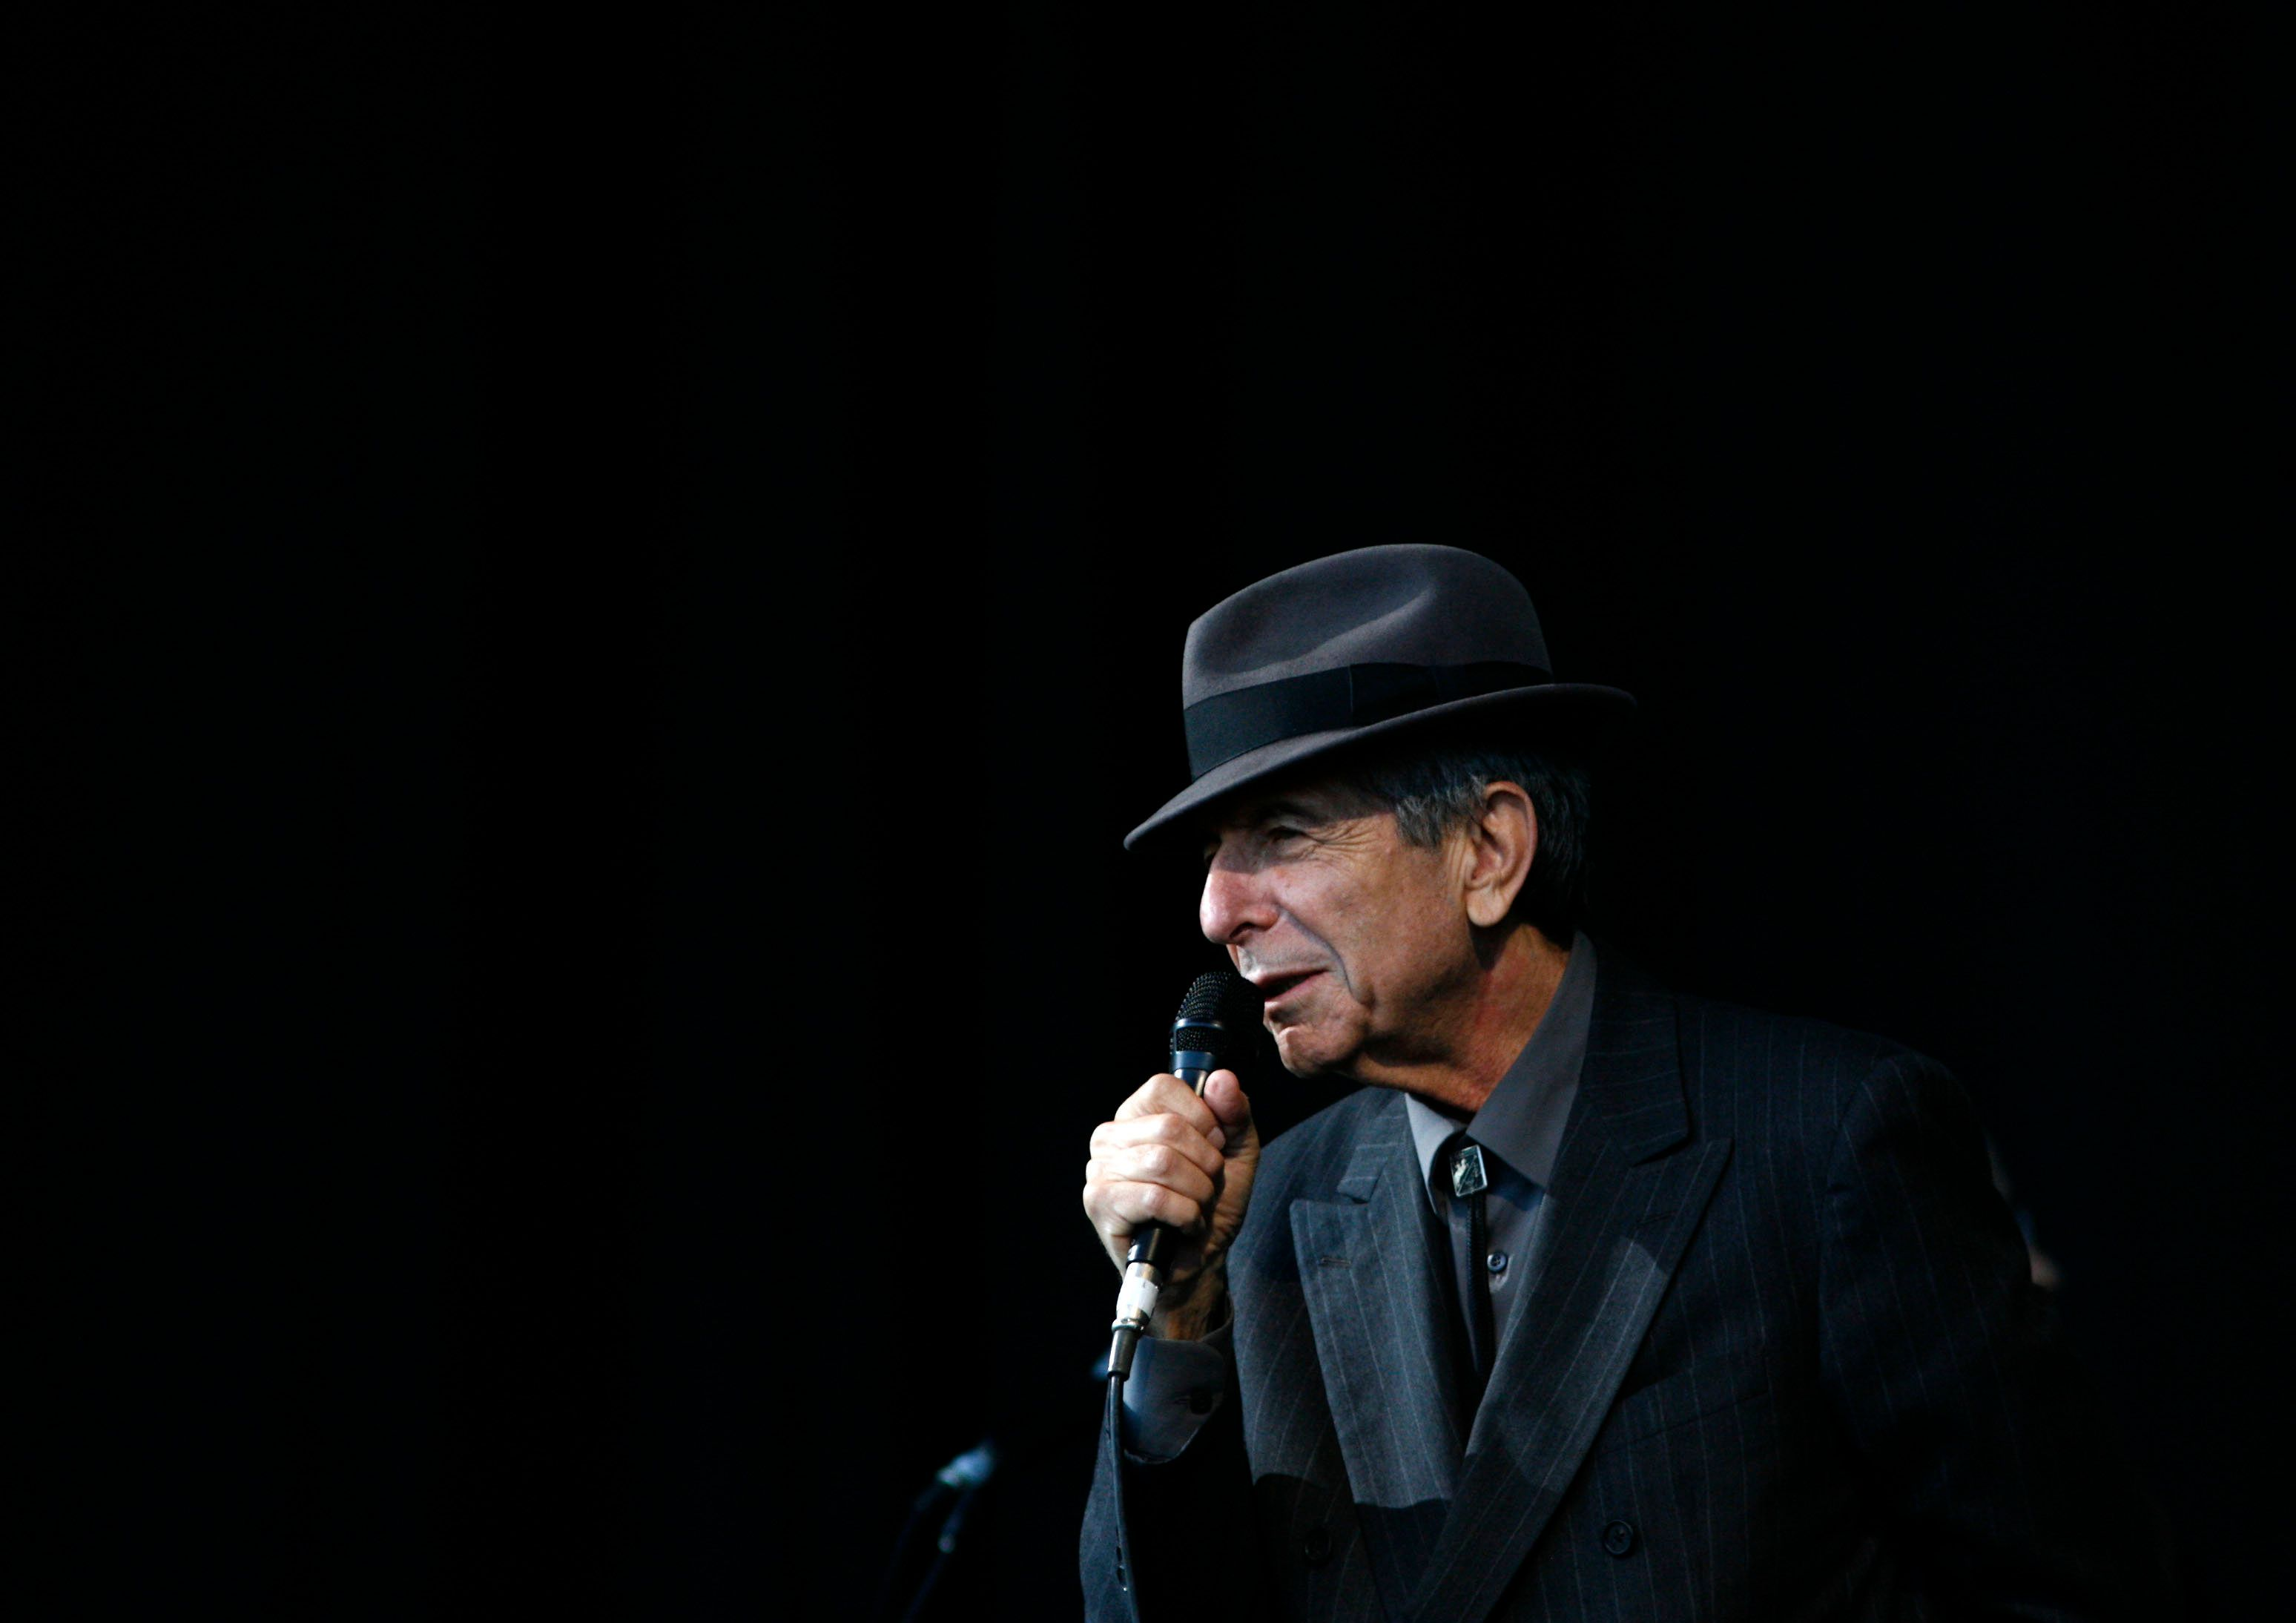 Canadian singer-songwriter Leonard Cohen performs at the Glastonbury Festival 2008 in Somerset in south west England June 29, 2008. REUTERS/Luke MacGregor (BRITAIN)